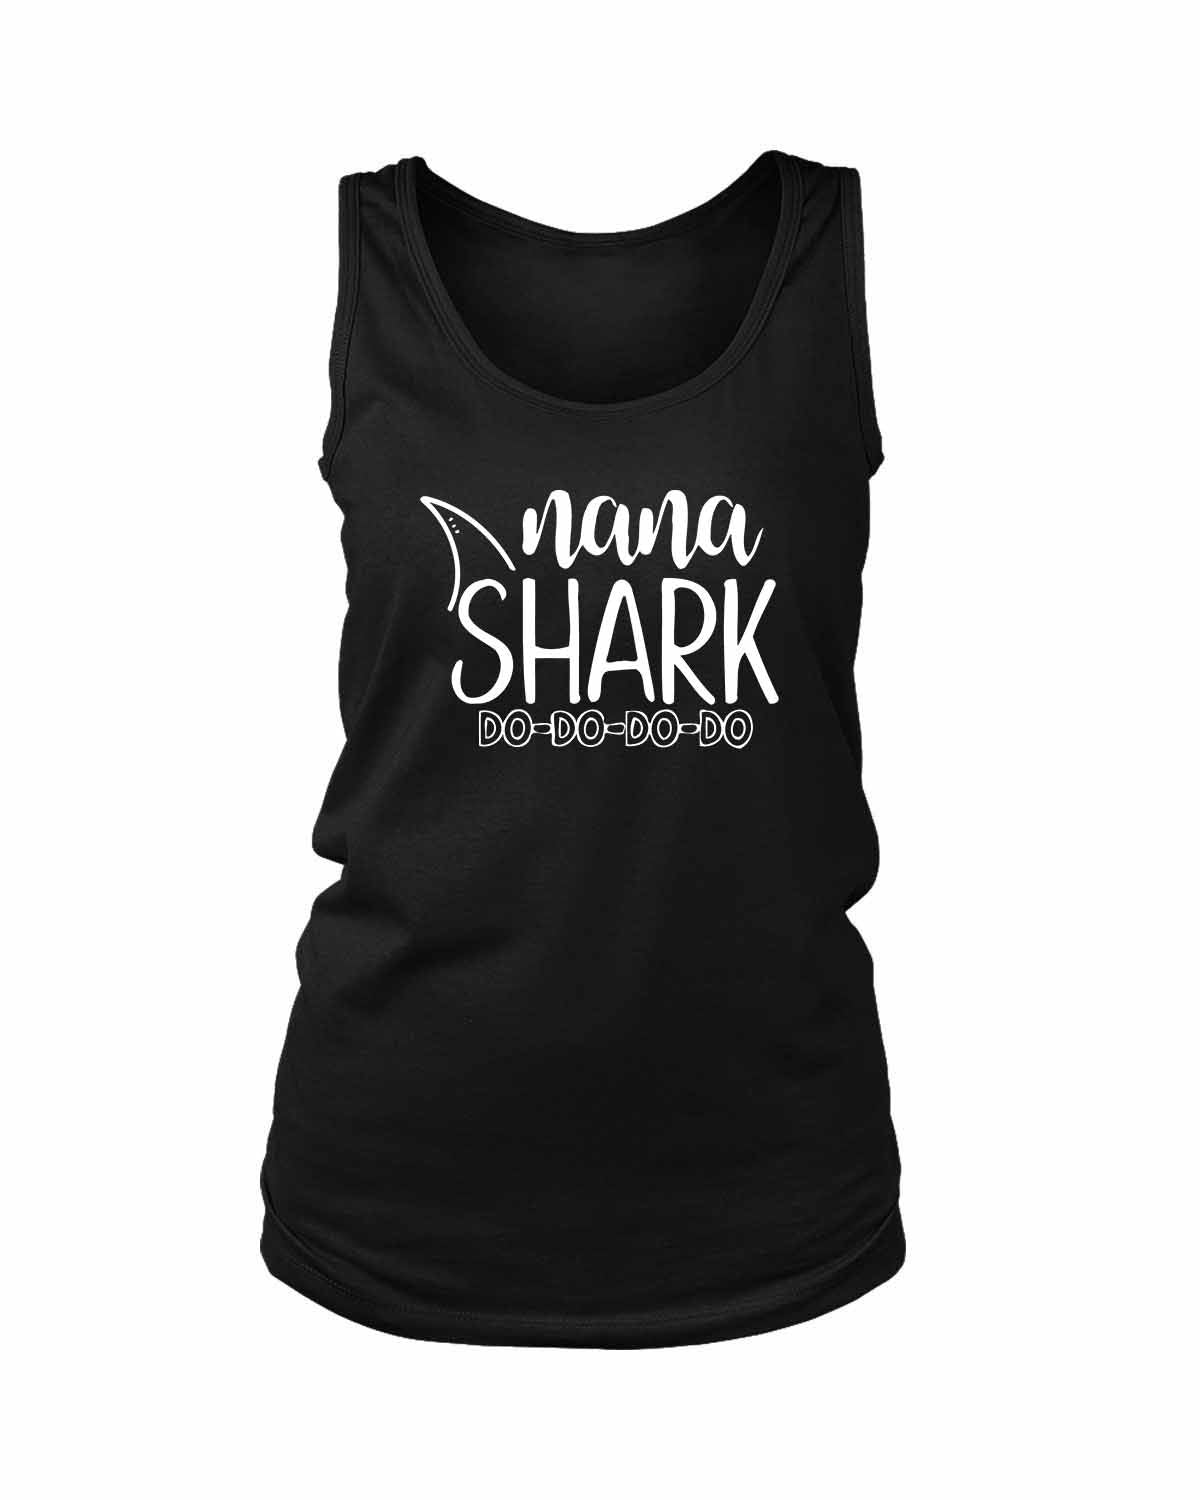 Nana Shark Doo Doo Doo Women's Tank Top